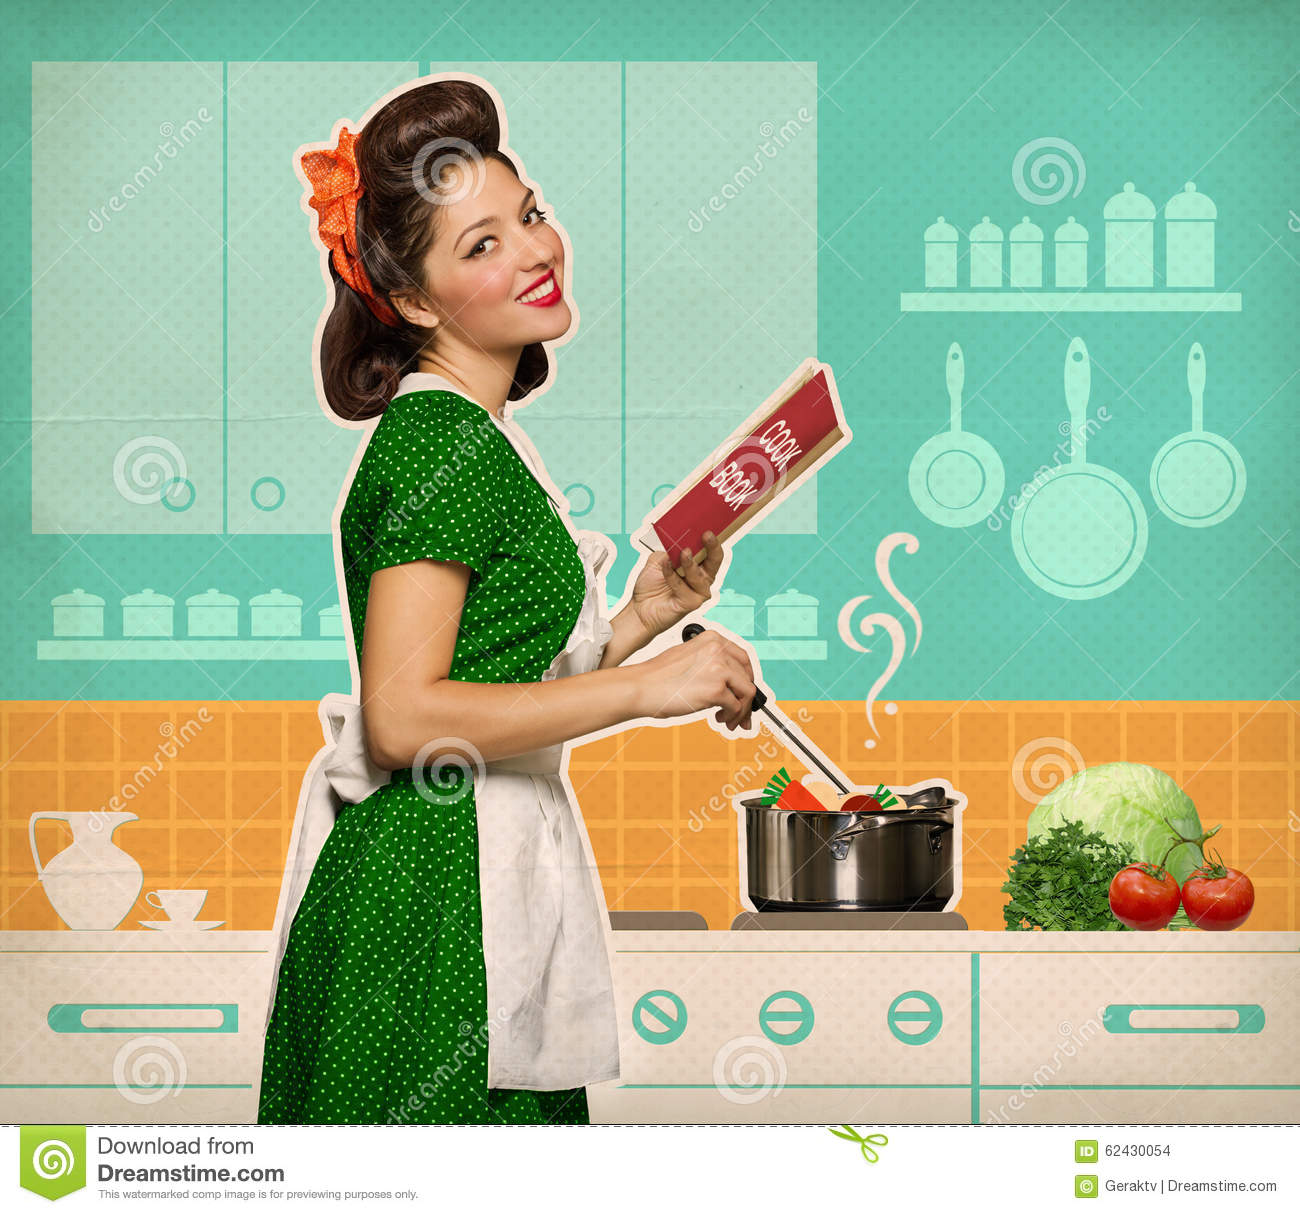 Retro Woman In Kitchen: Retro Smiling Woman Cooking And Reading Recipe Book In Her